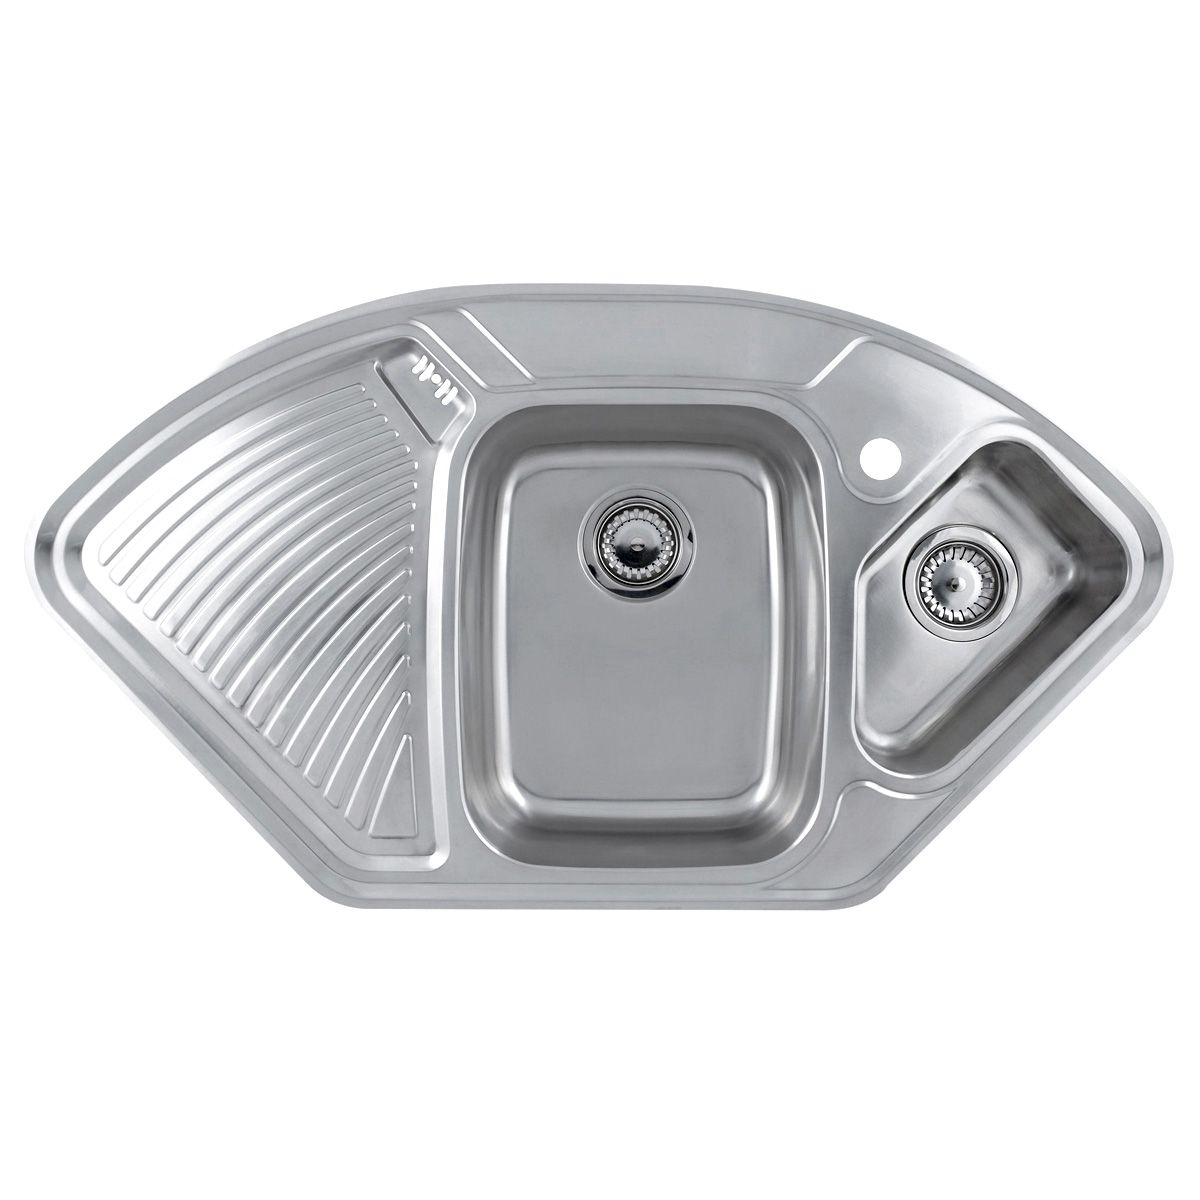 sinks canada stainless all ezra tagged collections kitchen pearl steel slr